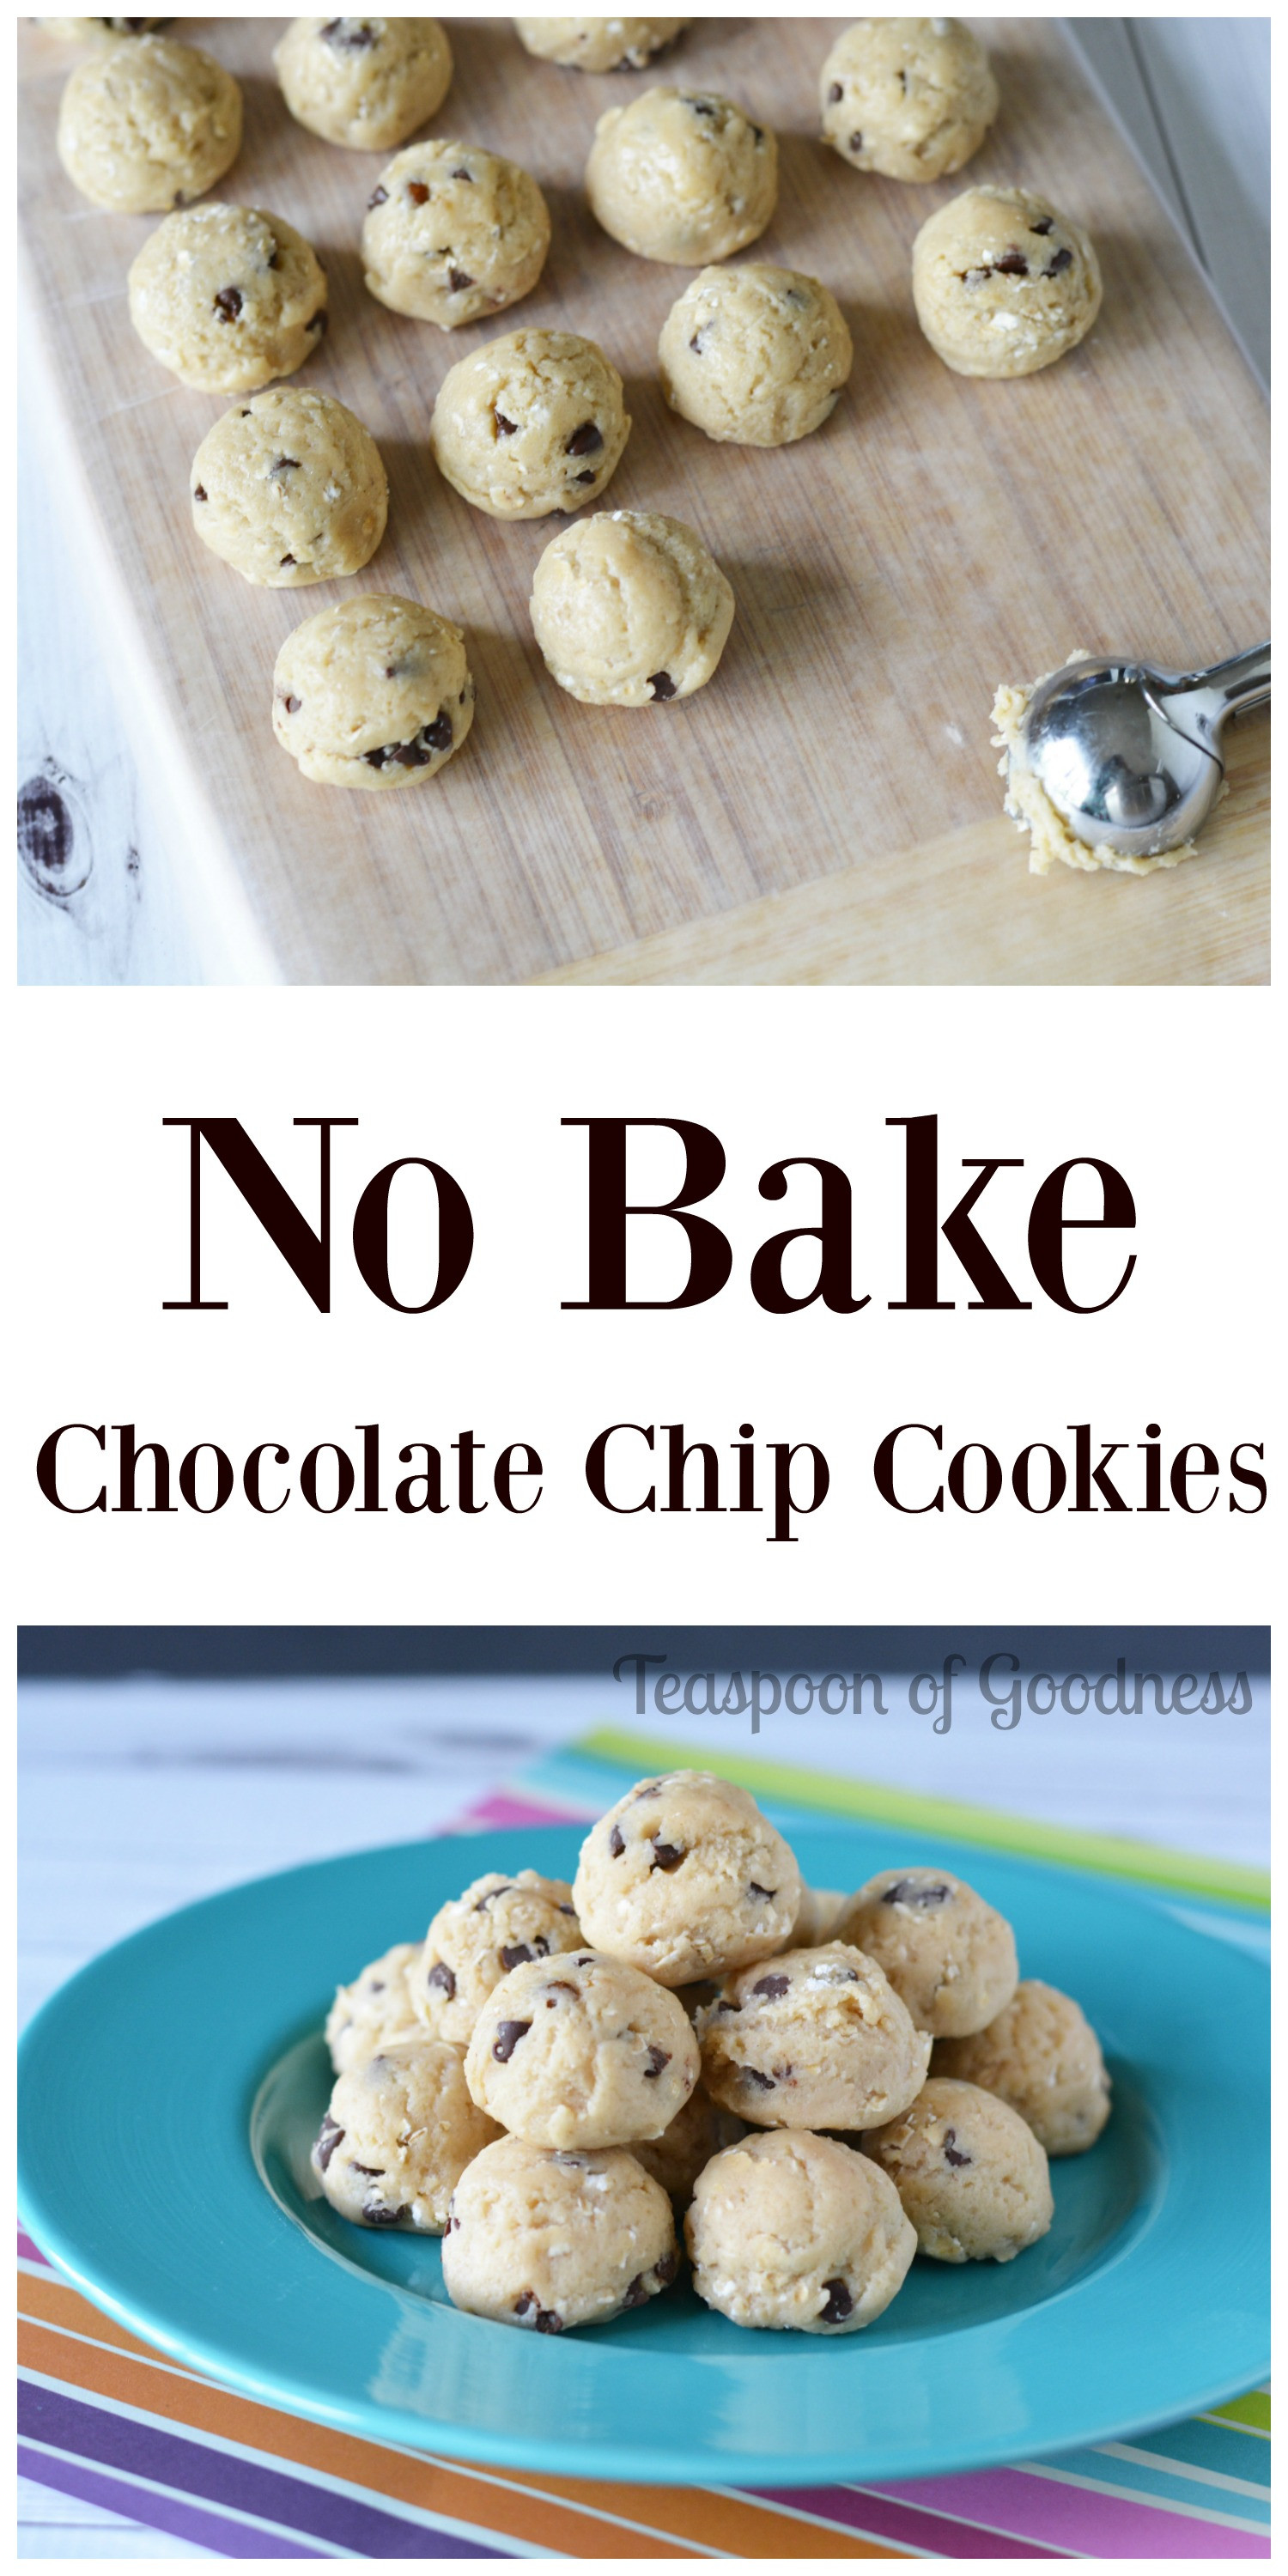 No Bake Chocolate Chip Cookies  No Bake Chocolate Chip Cookies Ball Recipe Teaspoon